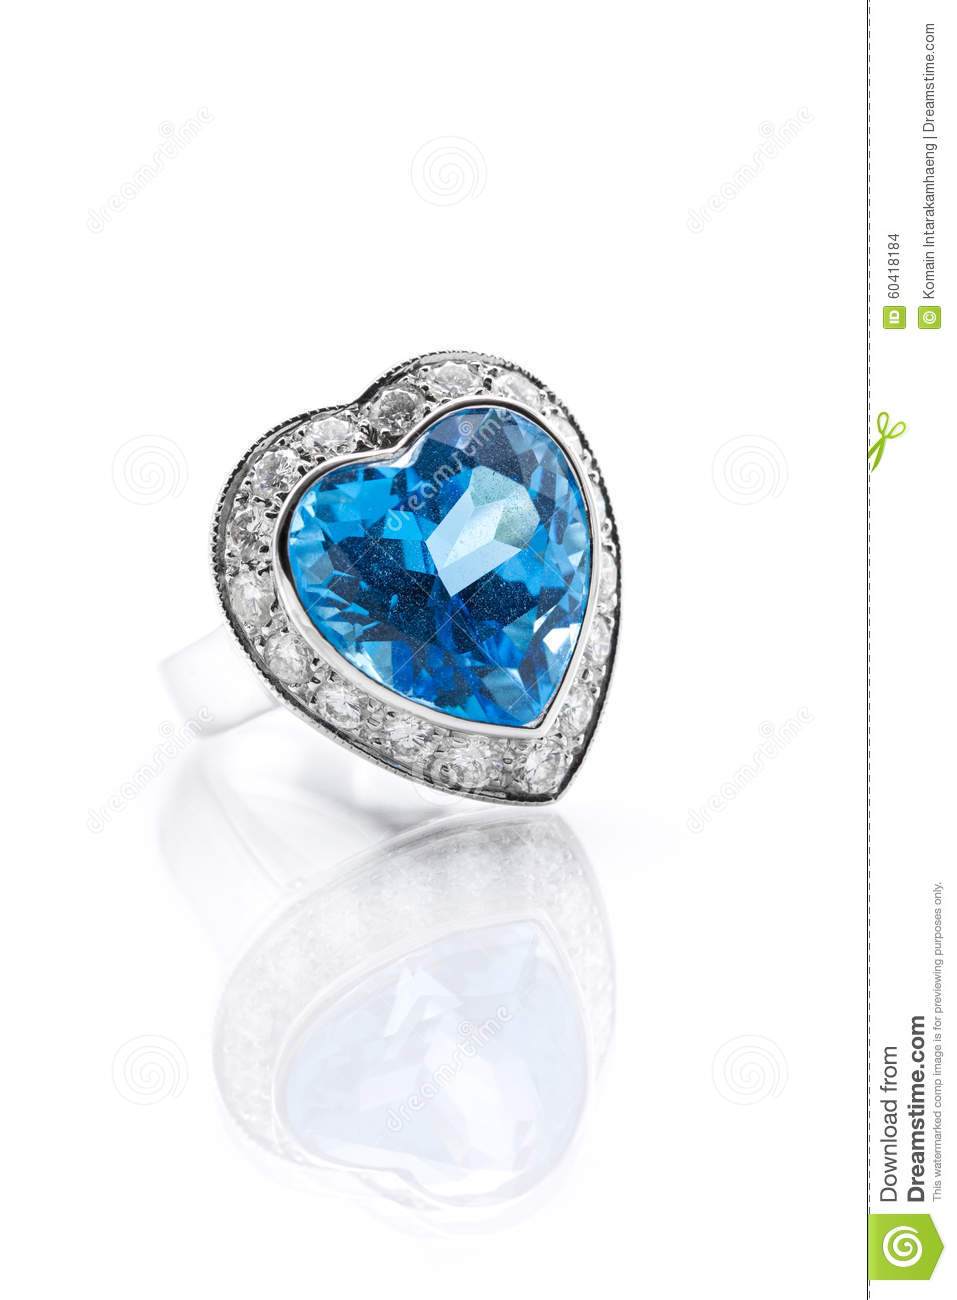 Blue topaz surrounded with diamond ring